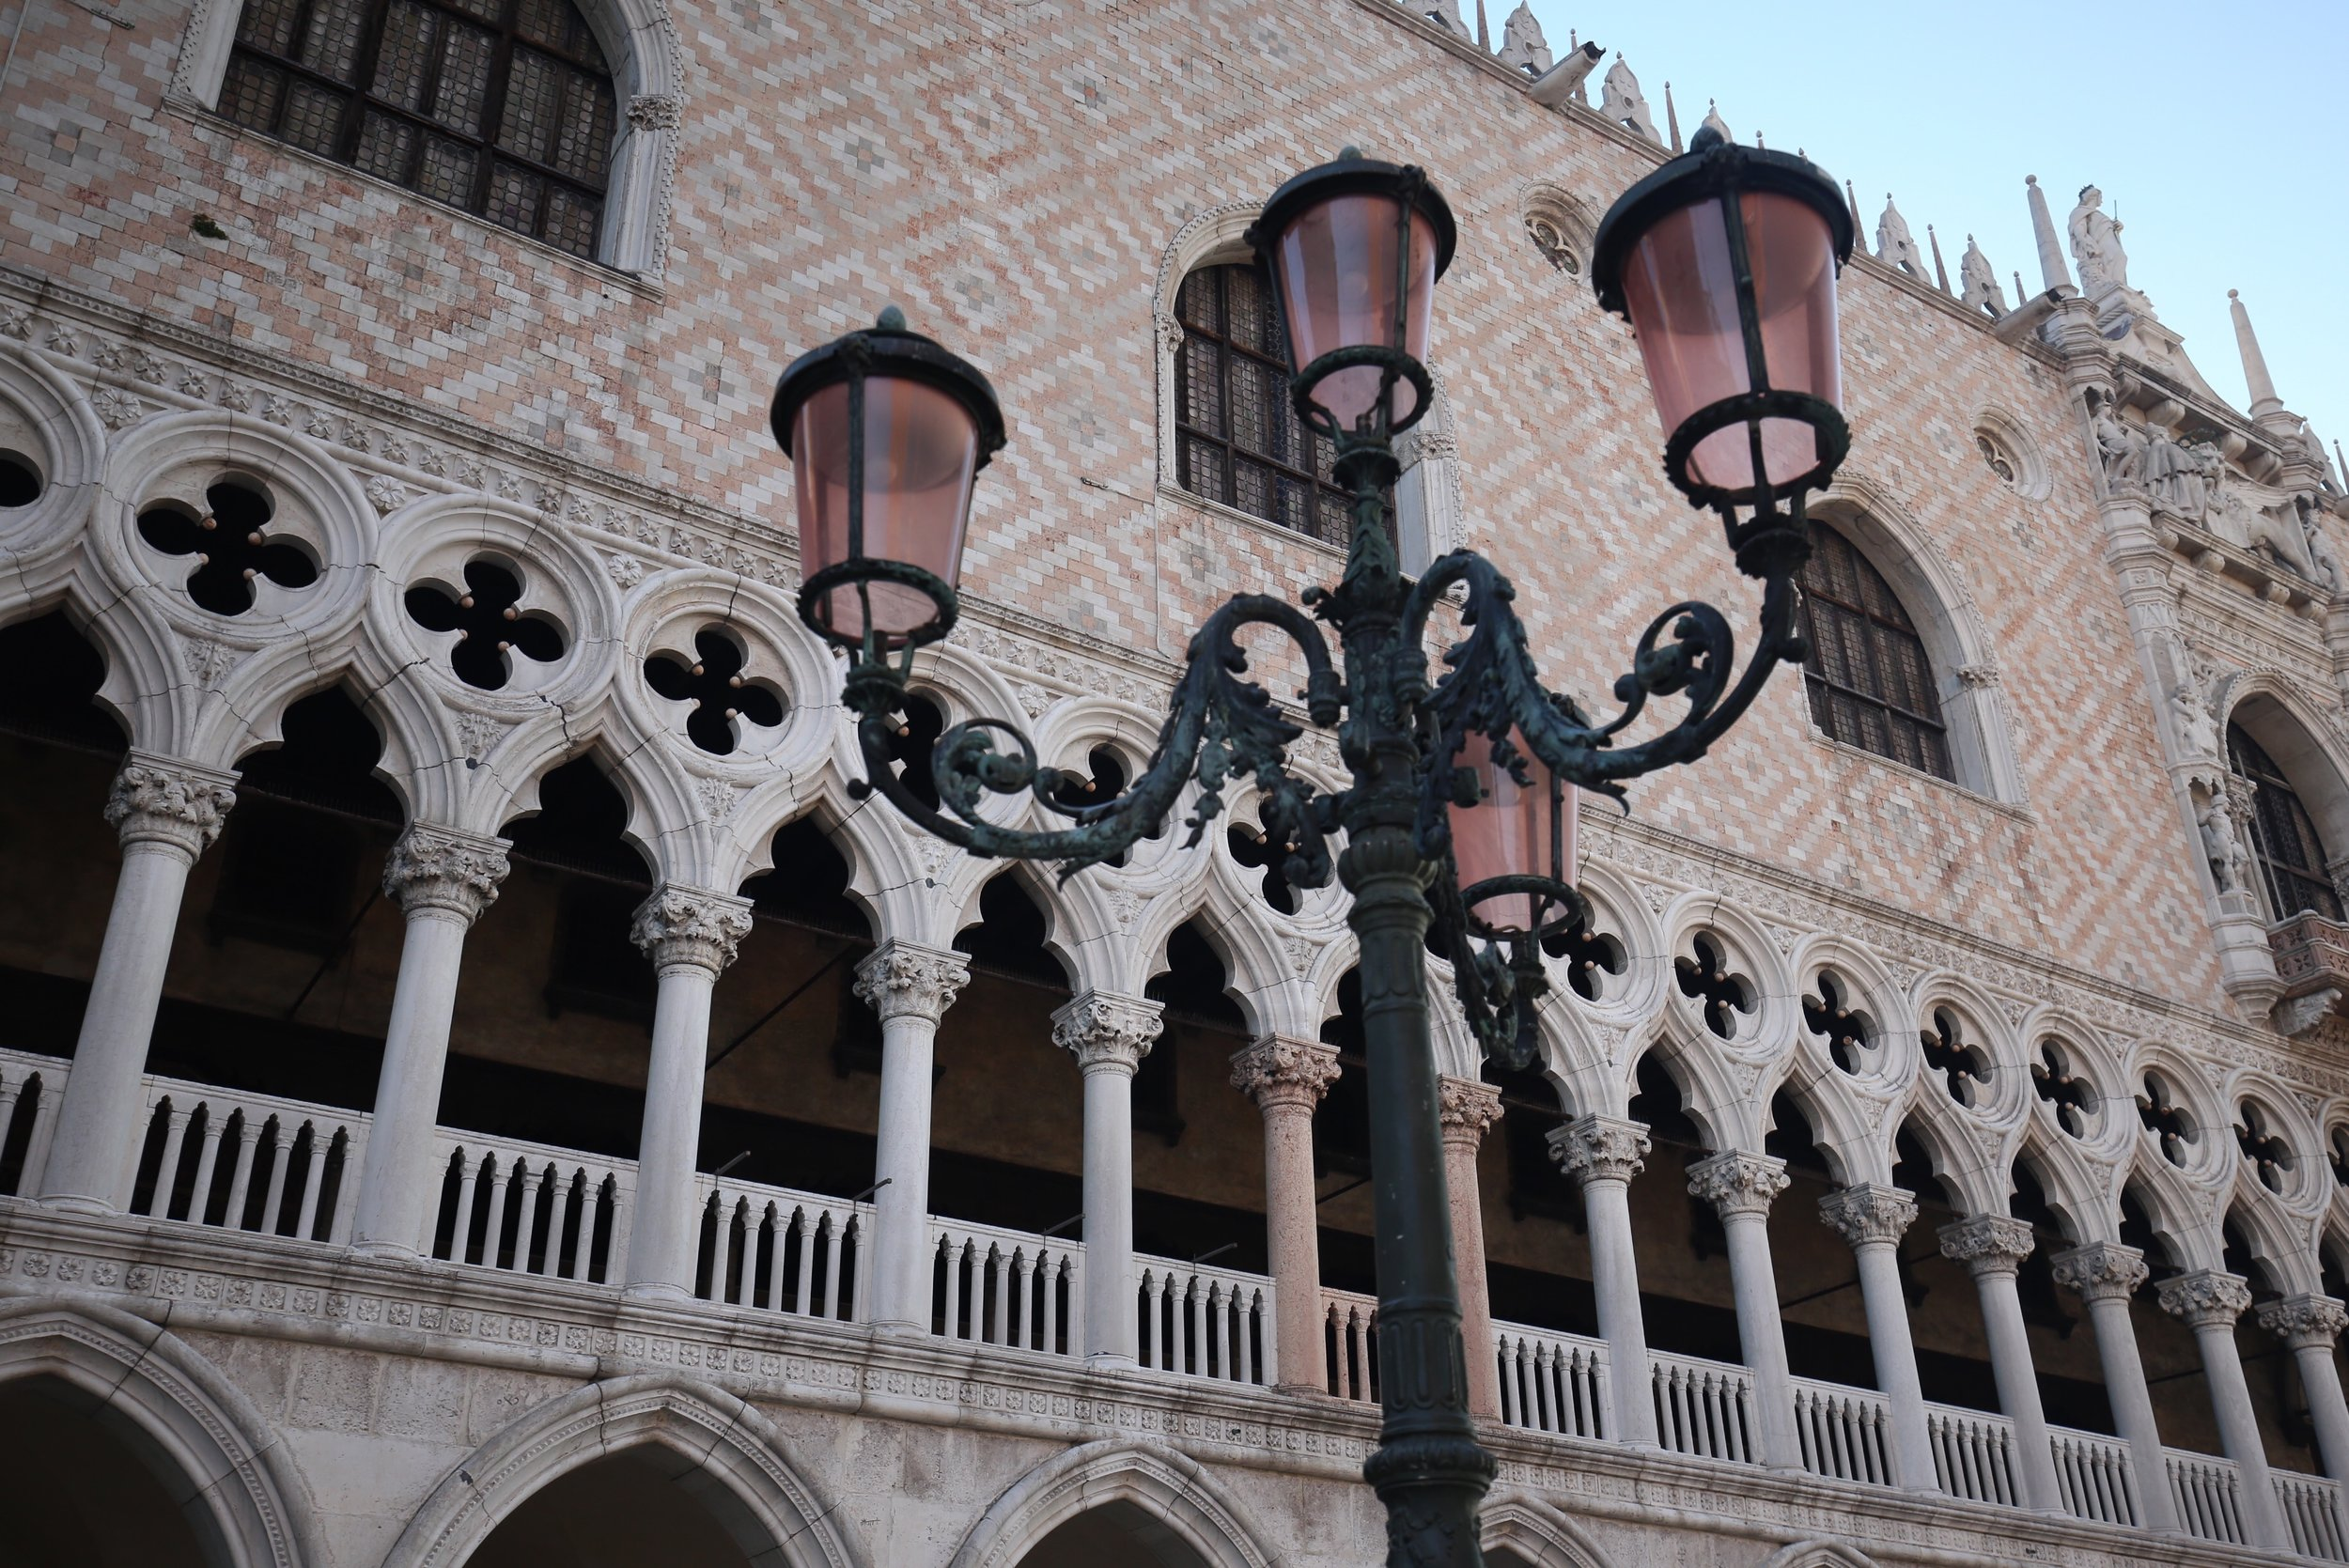 Pink lamp by the pink stone pillars of the Doge's Palace in Venice.